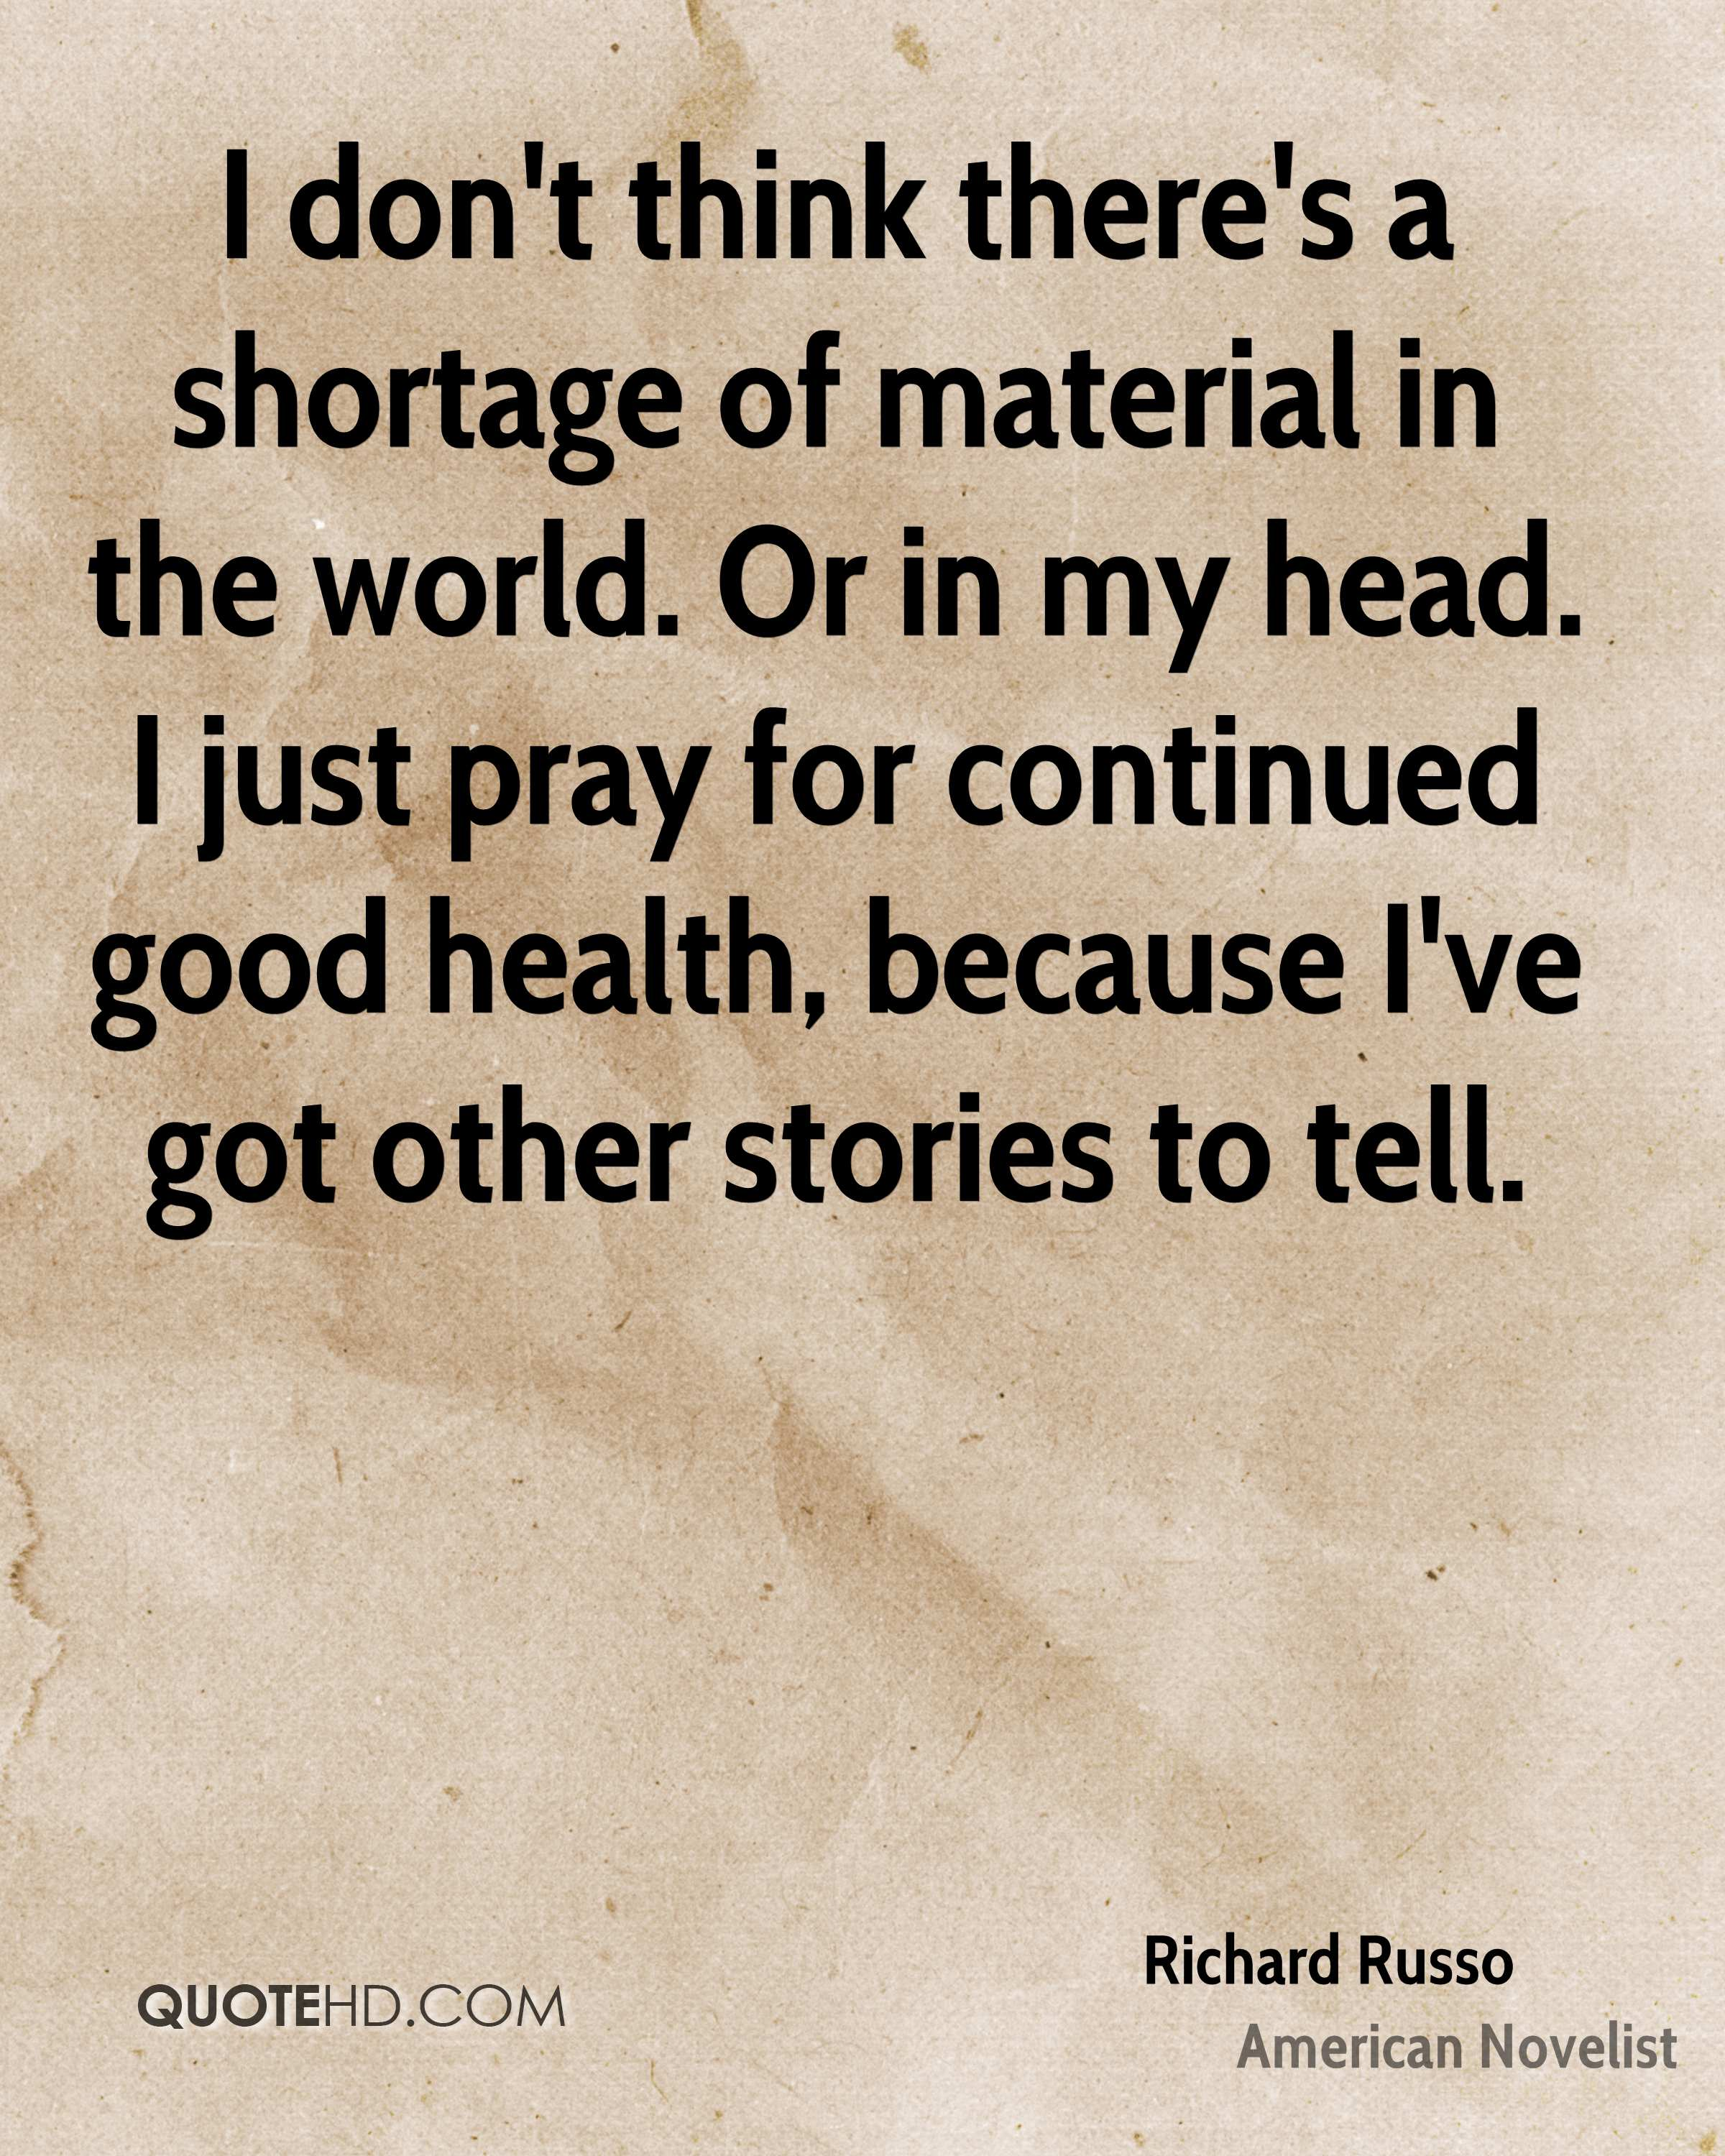 I don't think there's a shortage of material in the world. Or in my head. I just pray for continued good health, because I've got other stories to tell.